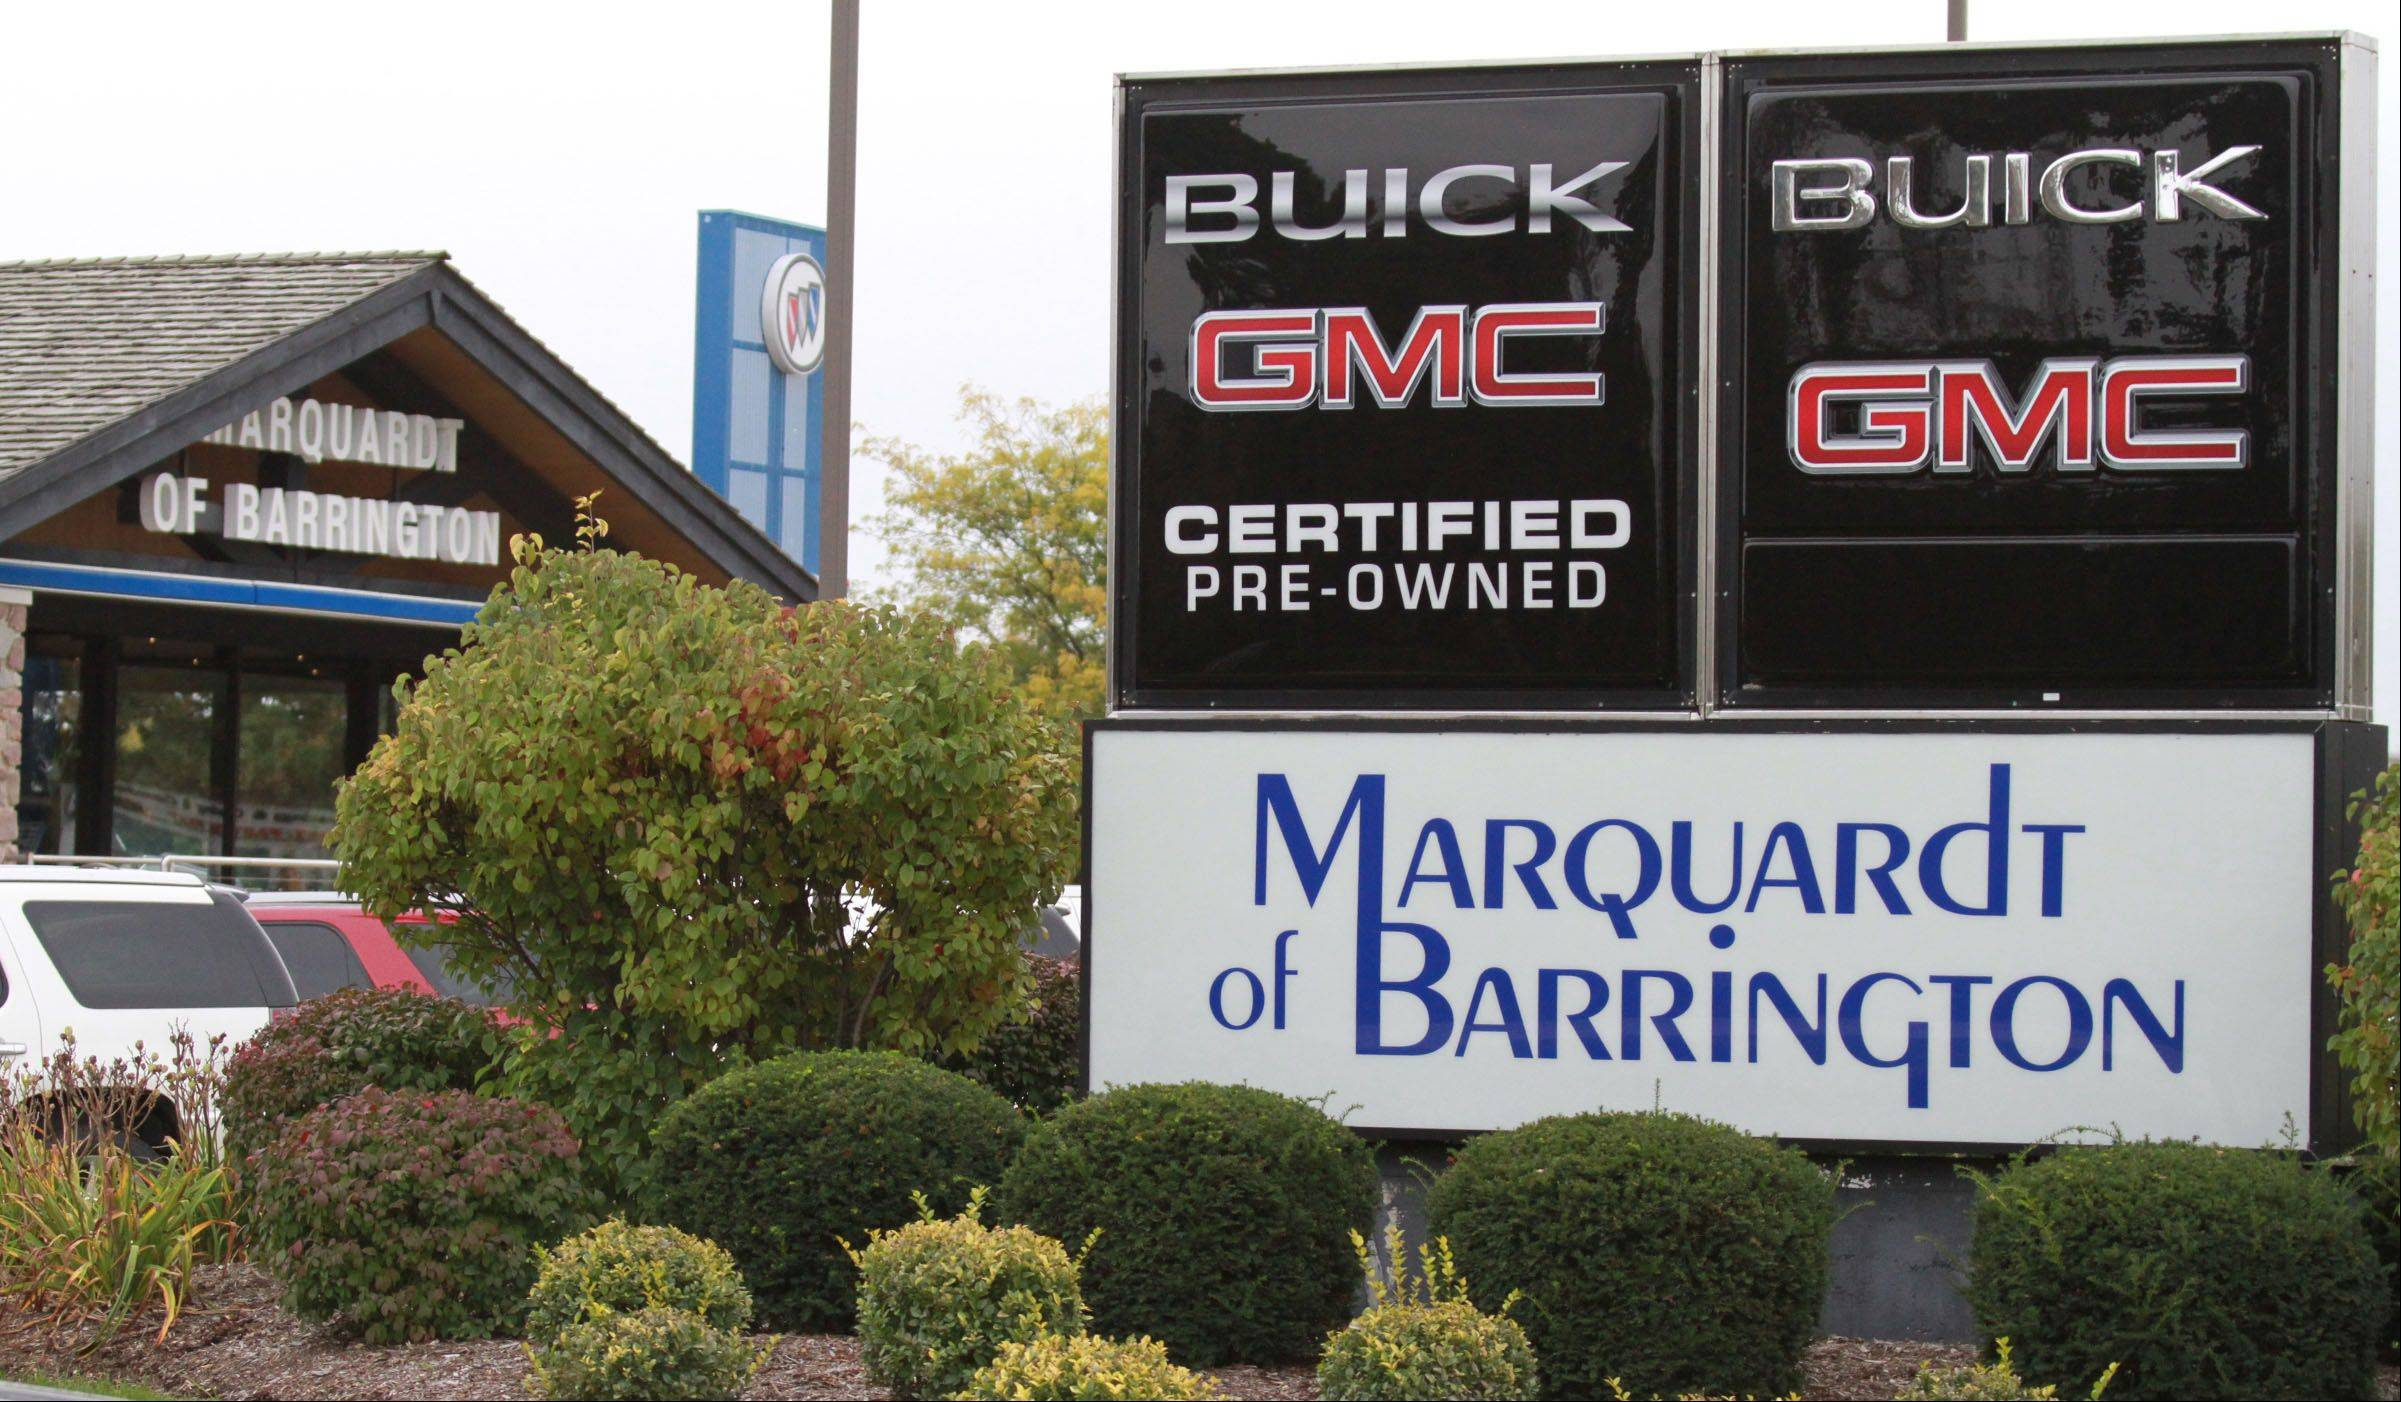 For 41 of its 50 years, Marquardt of Barrington has been at this Barrington Road location.